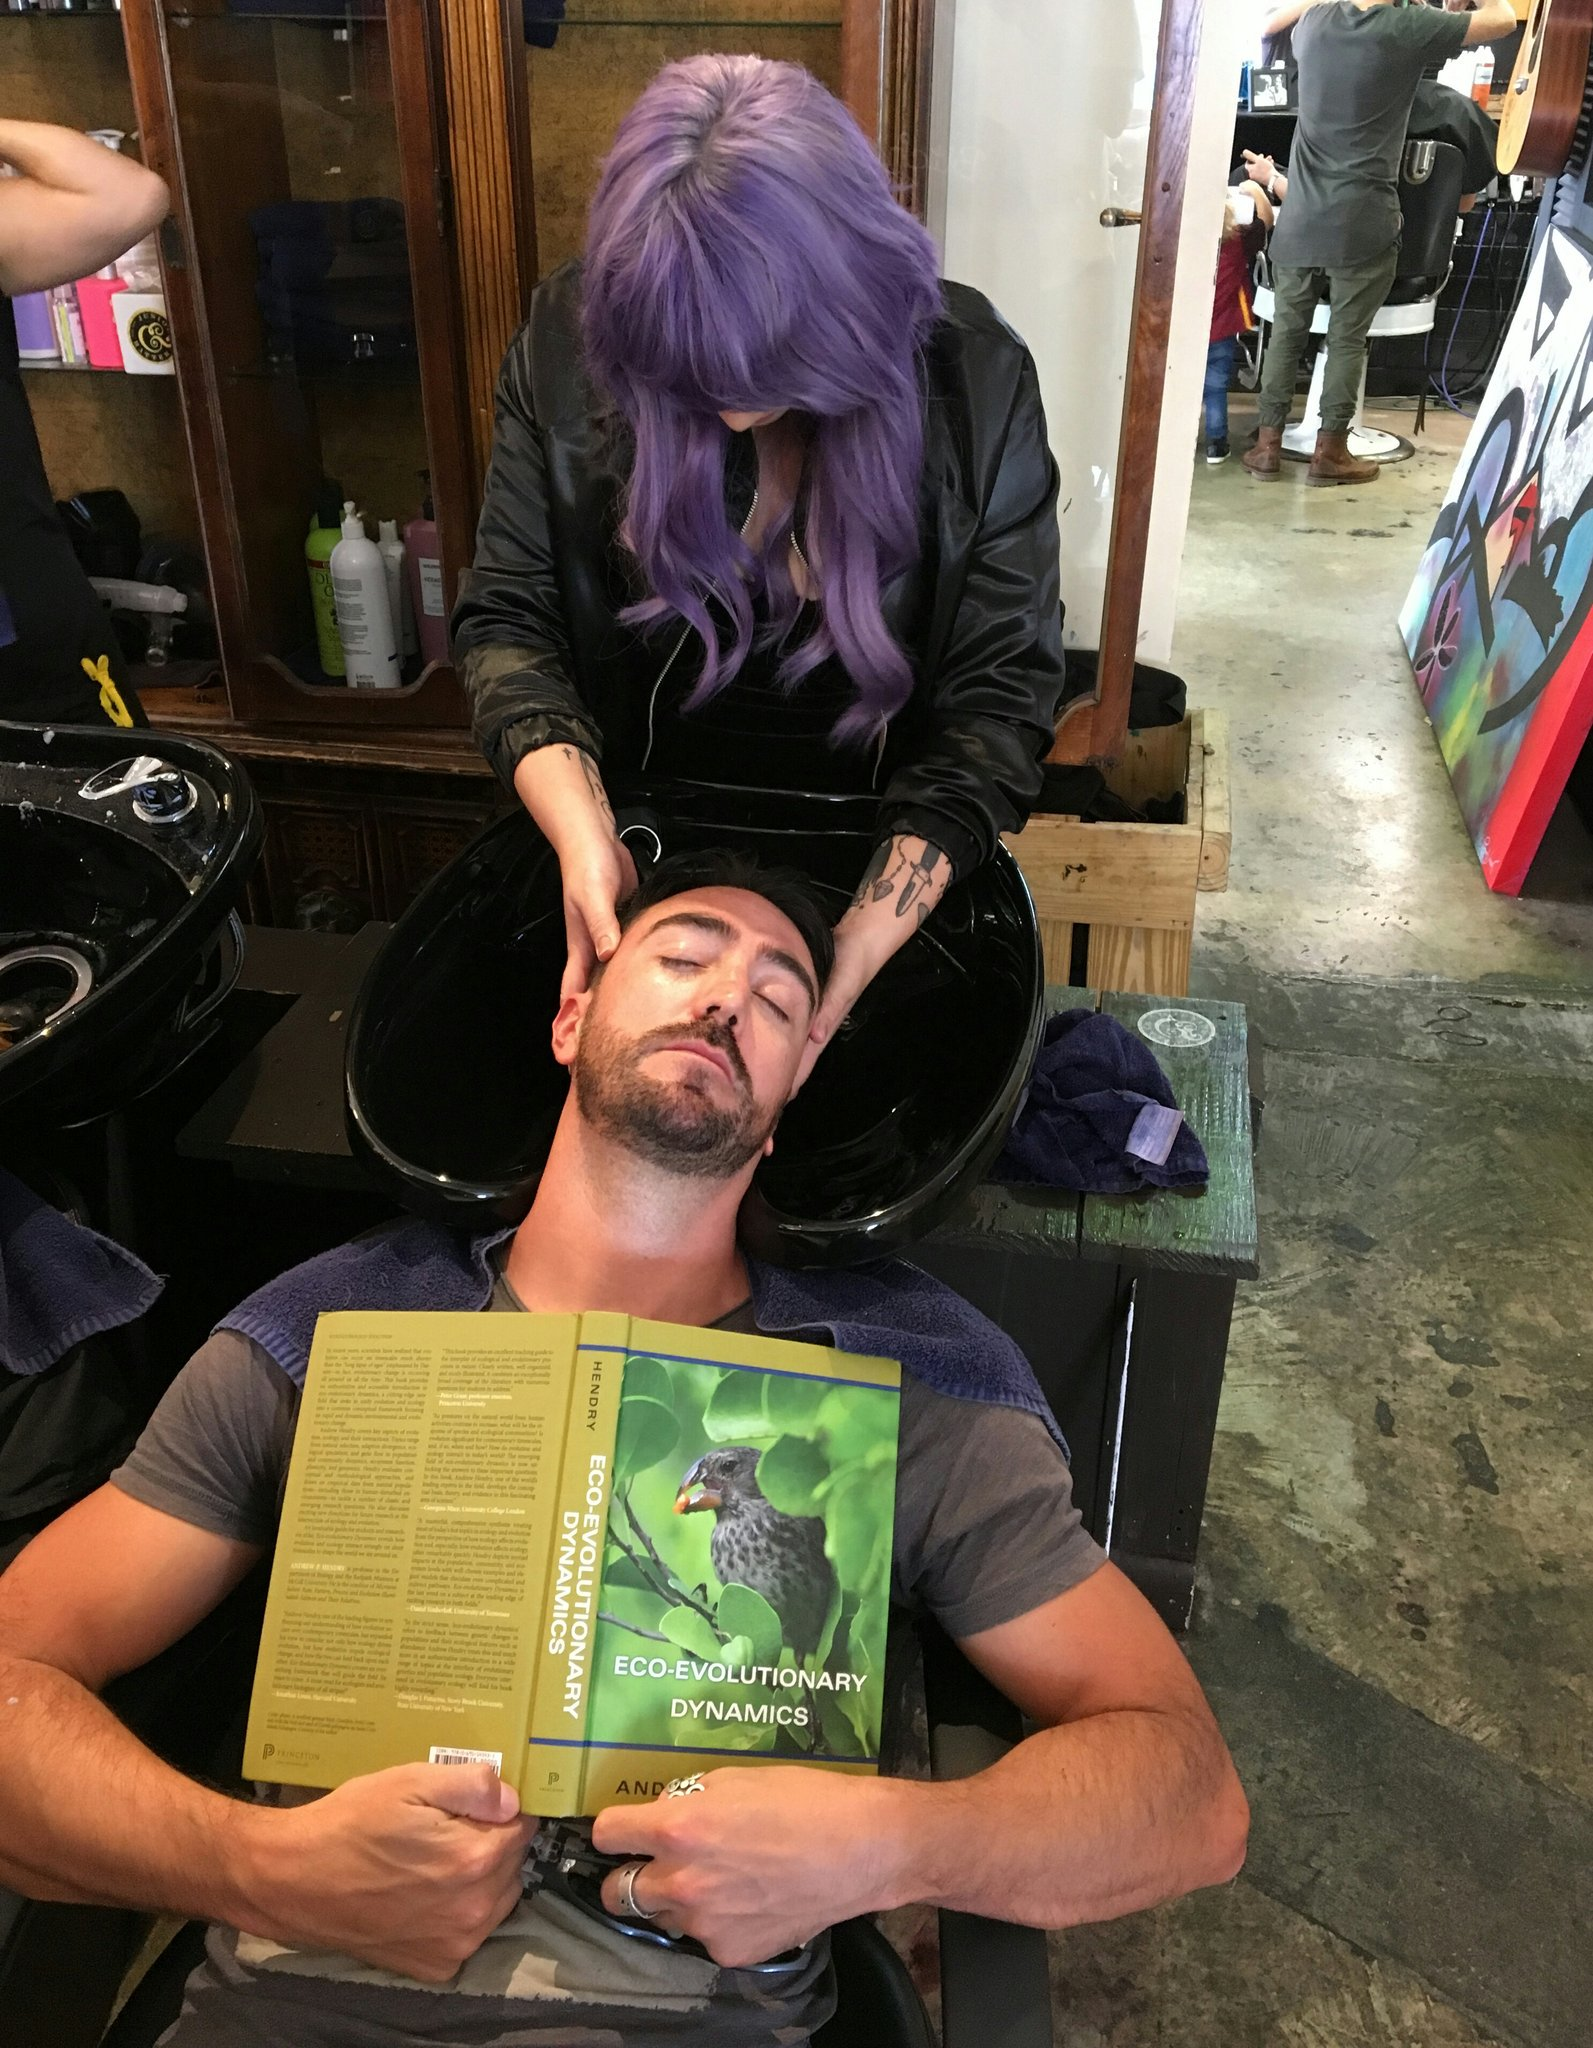 #PeopleWhoFellAsleepReadingMyBook Not fair @chavecito76 - a massage will put you to sleep regardless of the specific book. https://t.co/wvTFipD8XP